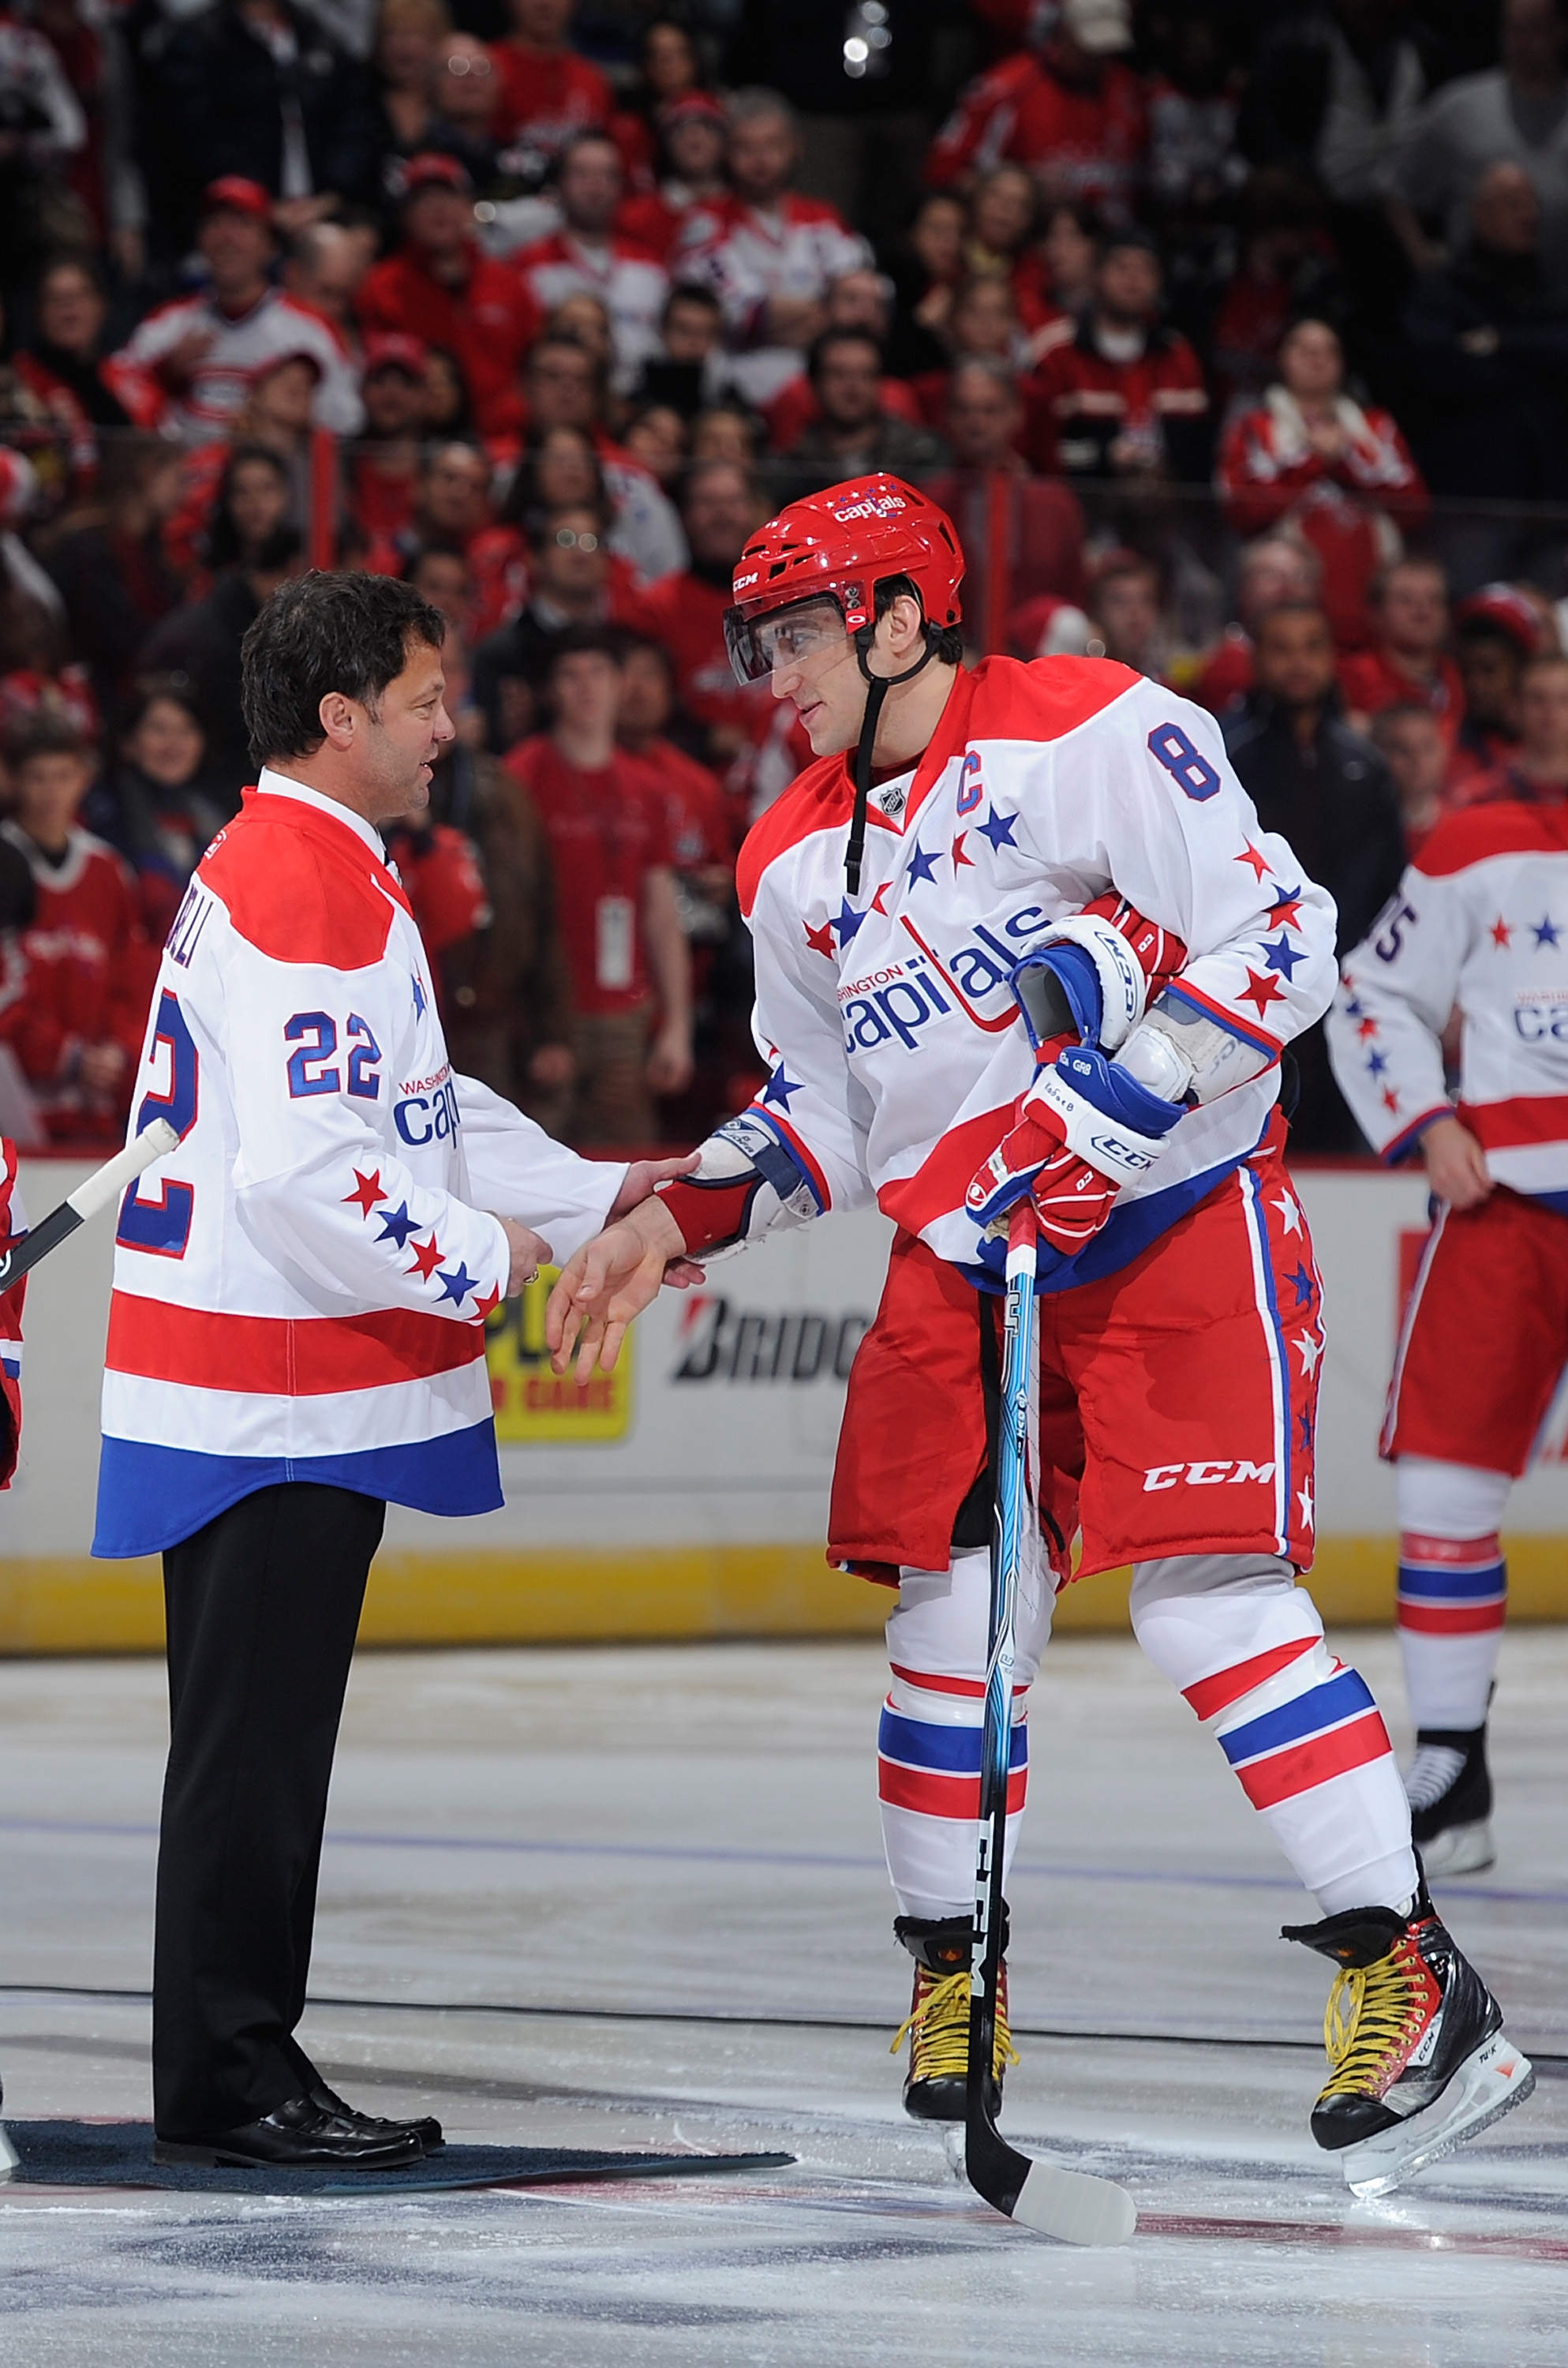 WASHINGTON, DC - FEBRUARY 01:  Former Washington Capital Dino Ciccarelli shakes hands with Alex Ovechkin #8 of the Washington Capitals before the game against the Montreal Canadiens at the Verizon Center on February 1, 2011 in Washington, DC.  (Photo by G